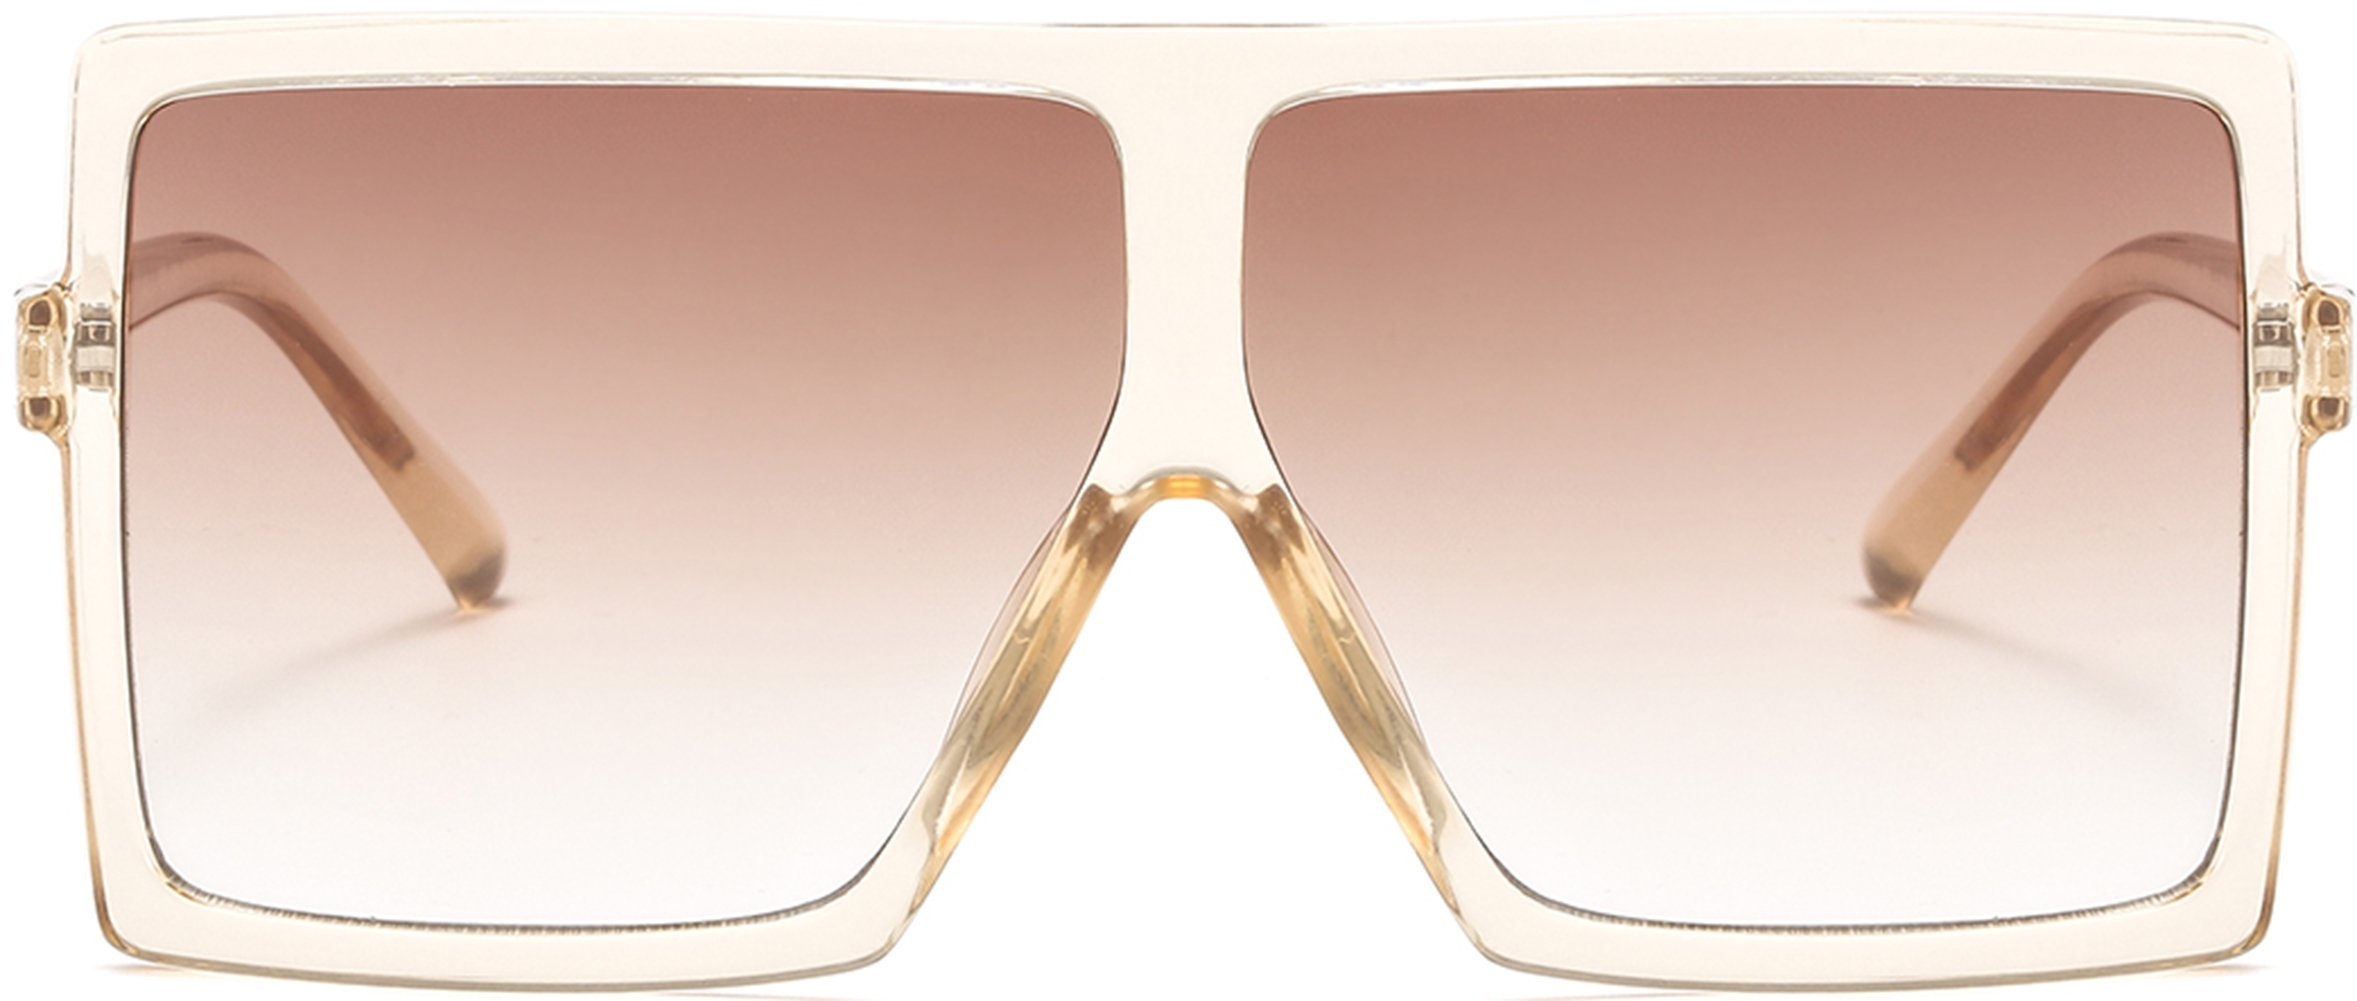 MAOLEN Square Oversized Flat Top Sunglasses for Women and Men (transparency-brown-gloss black-grey) by MAOLEN (Image #4)